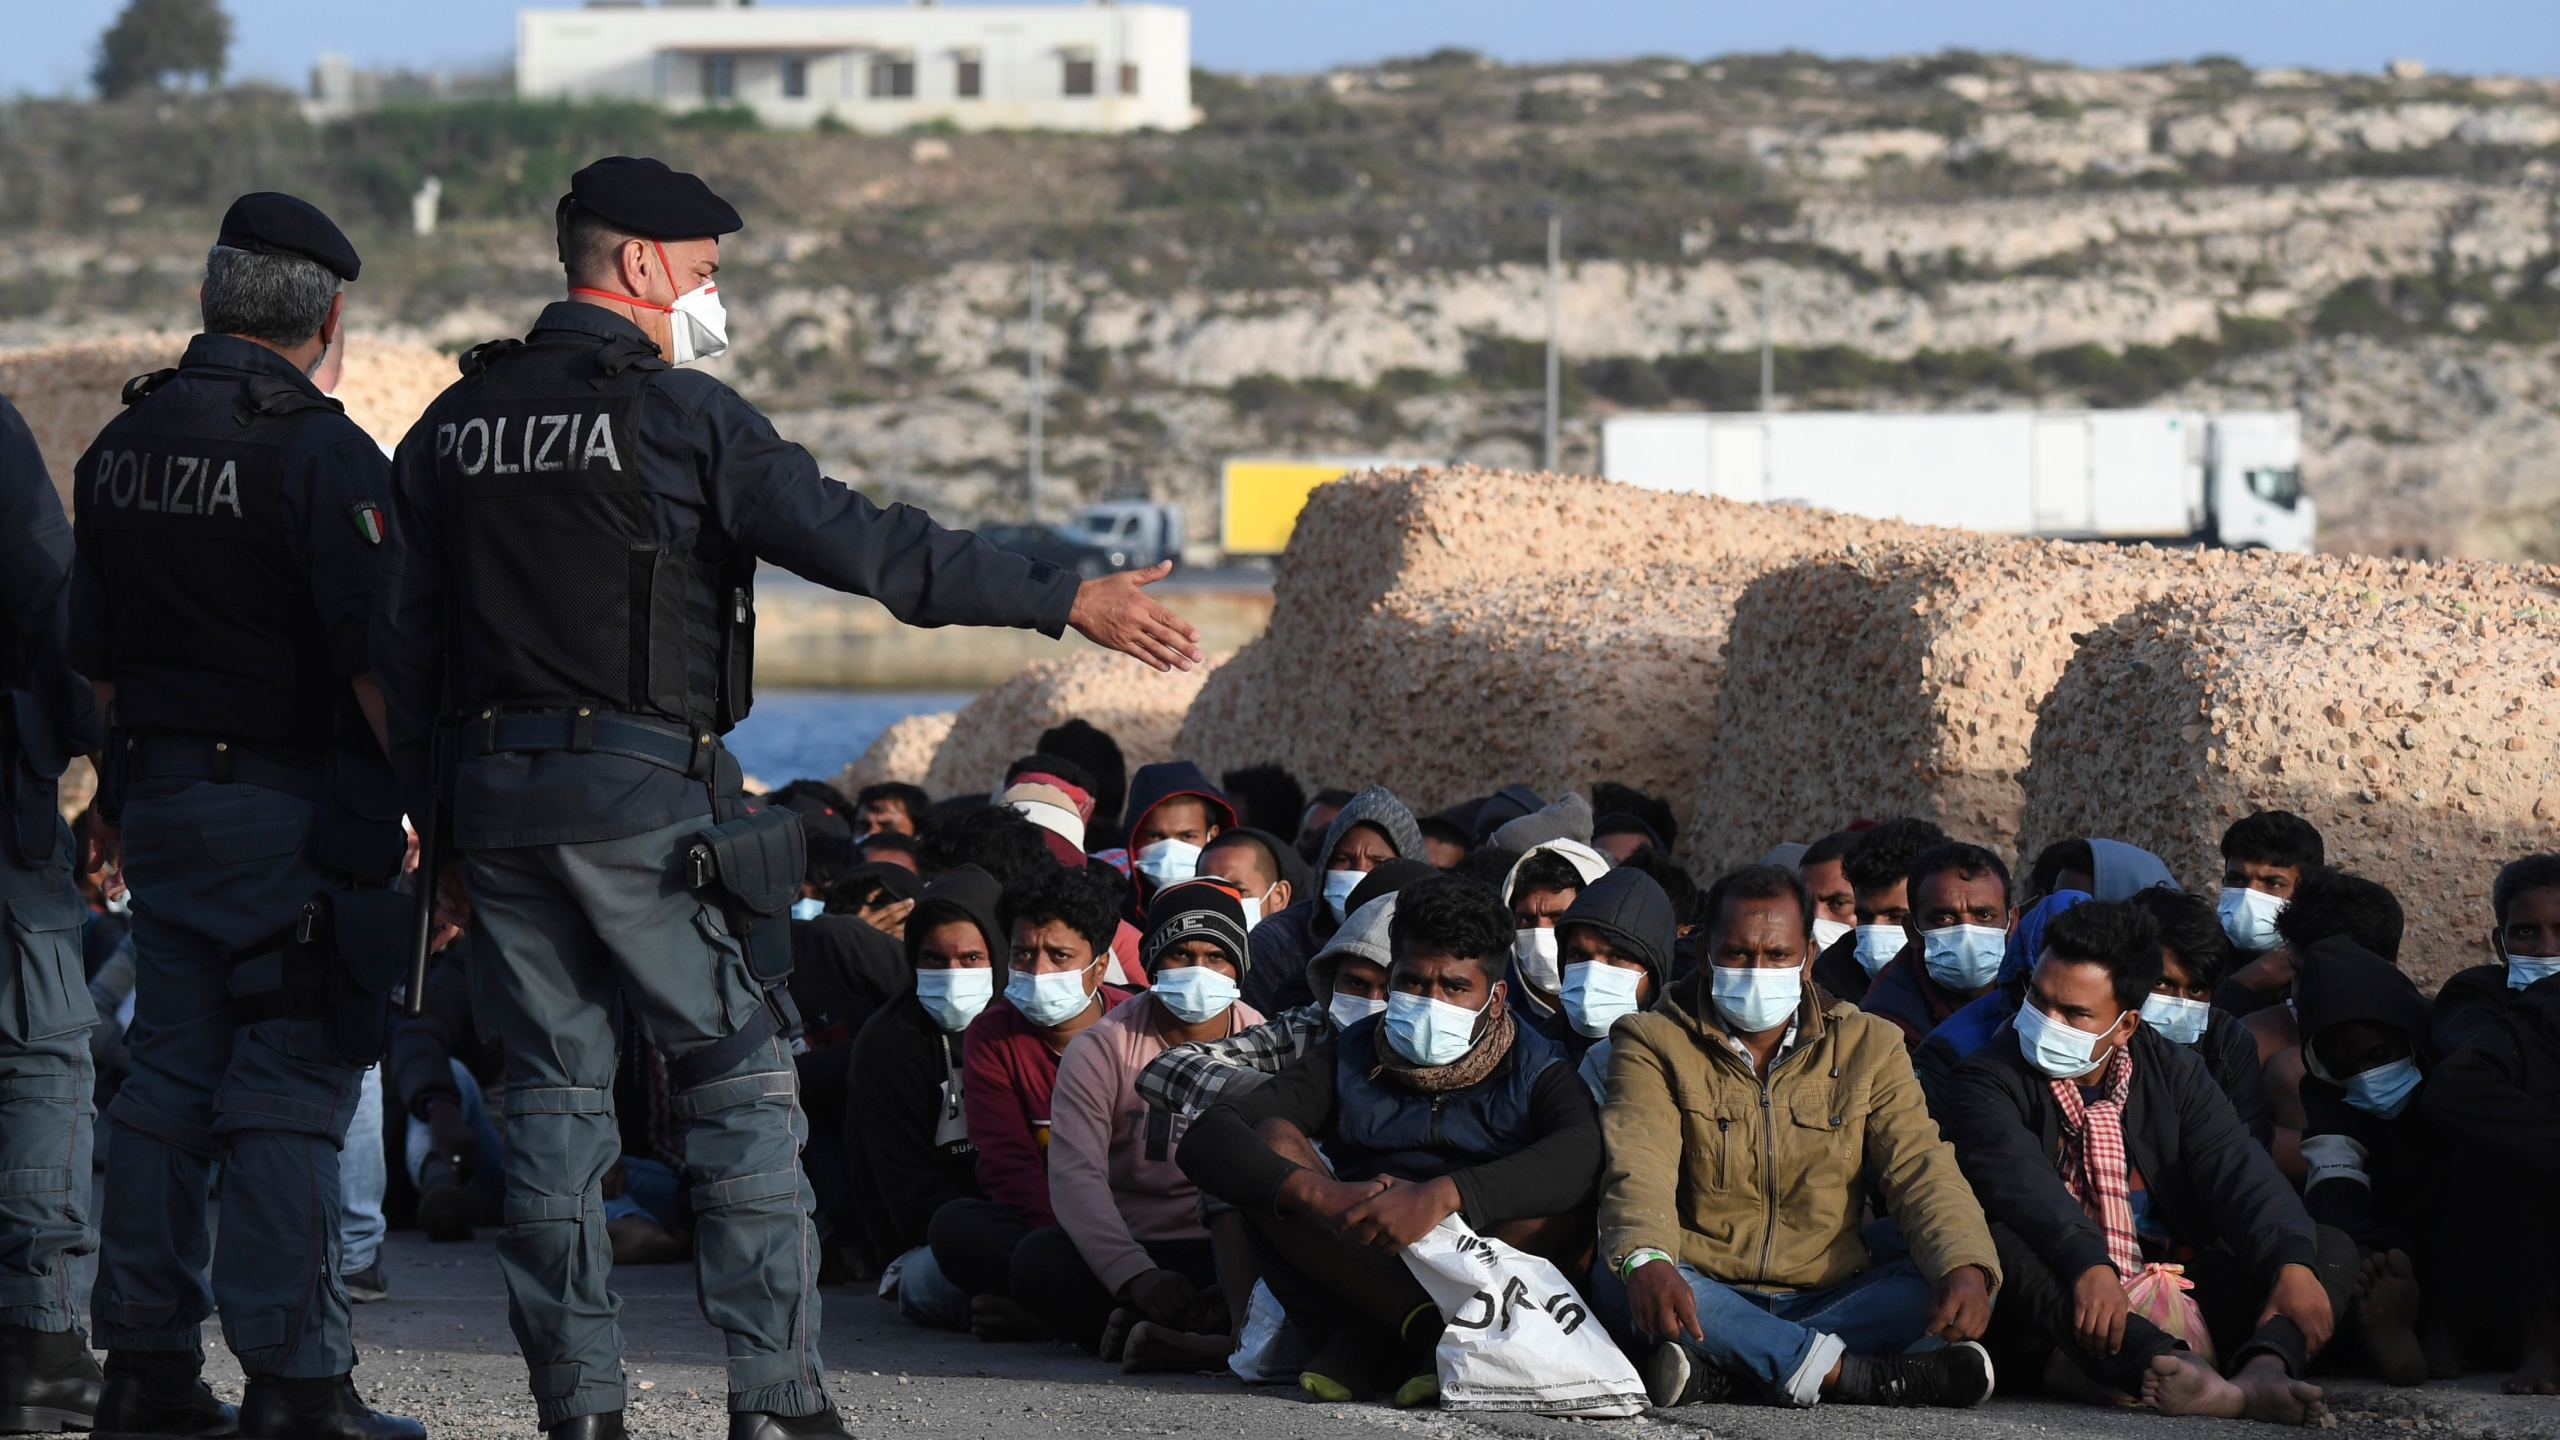 Over two thousand migrants in Lampedusa in 24 hours